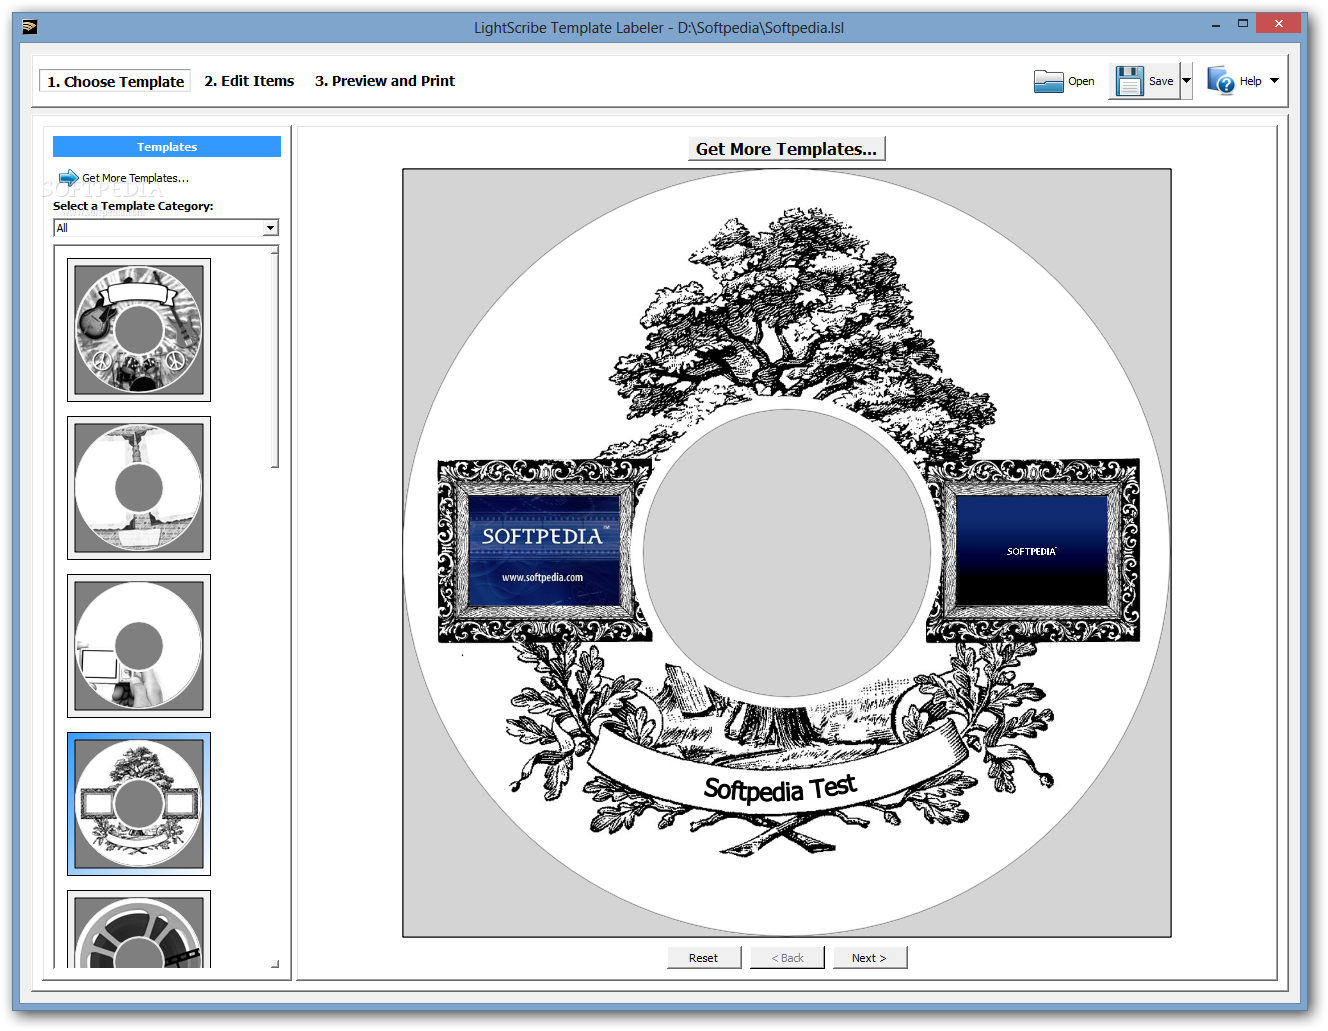 Image Gallery Lightscribe Templates